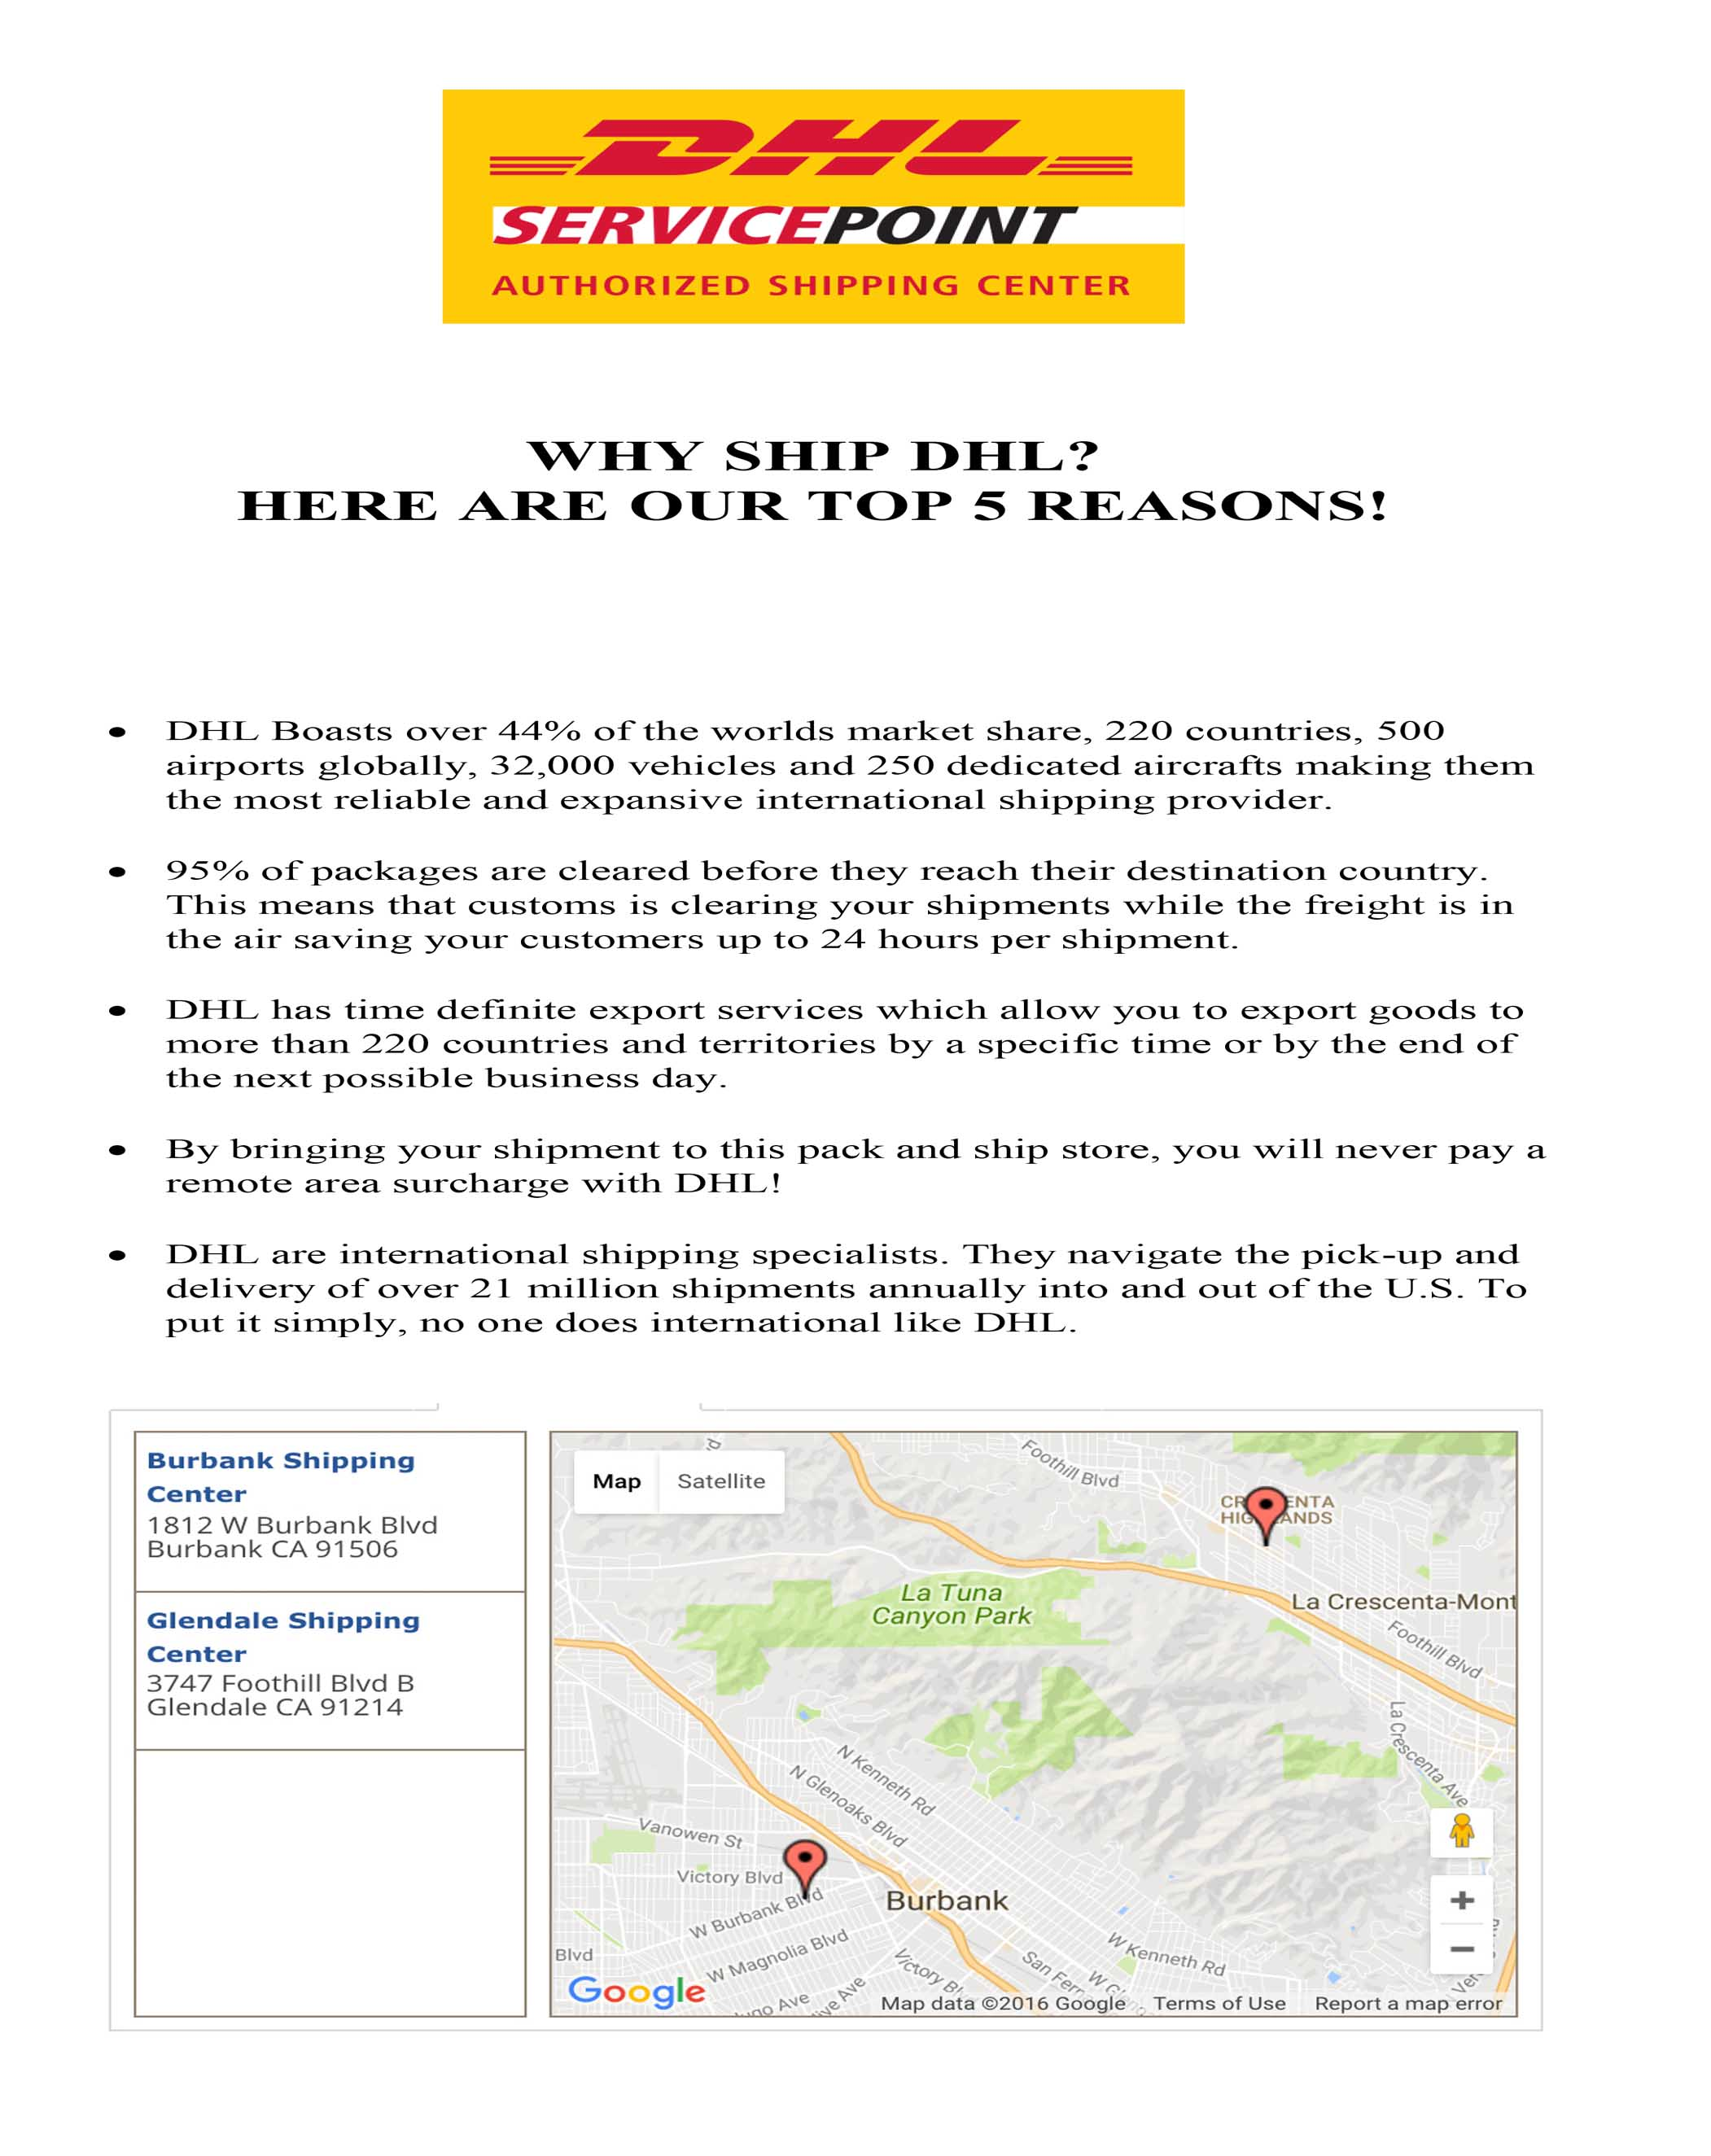 Dhl Locations Near Me >> Dhl International Shipping Burbank Ca Burbank Shipping